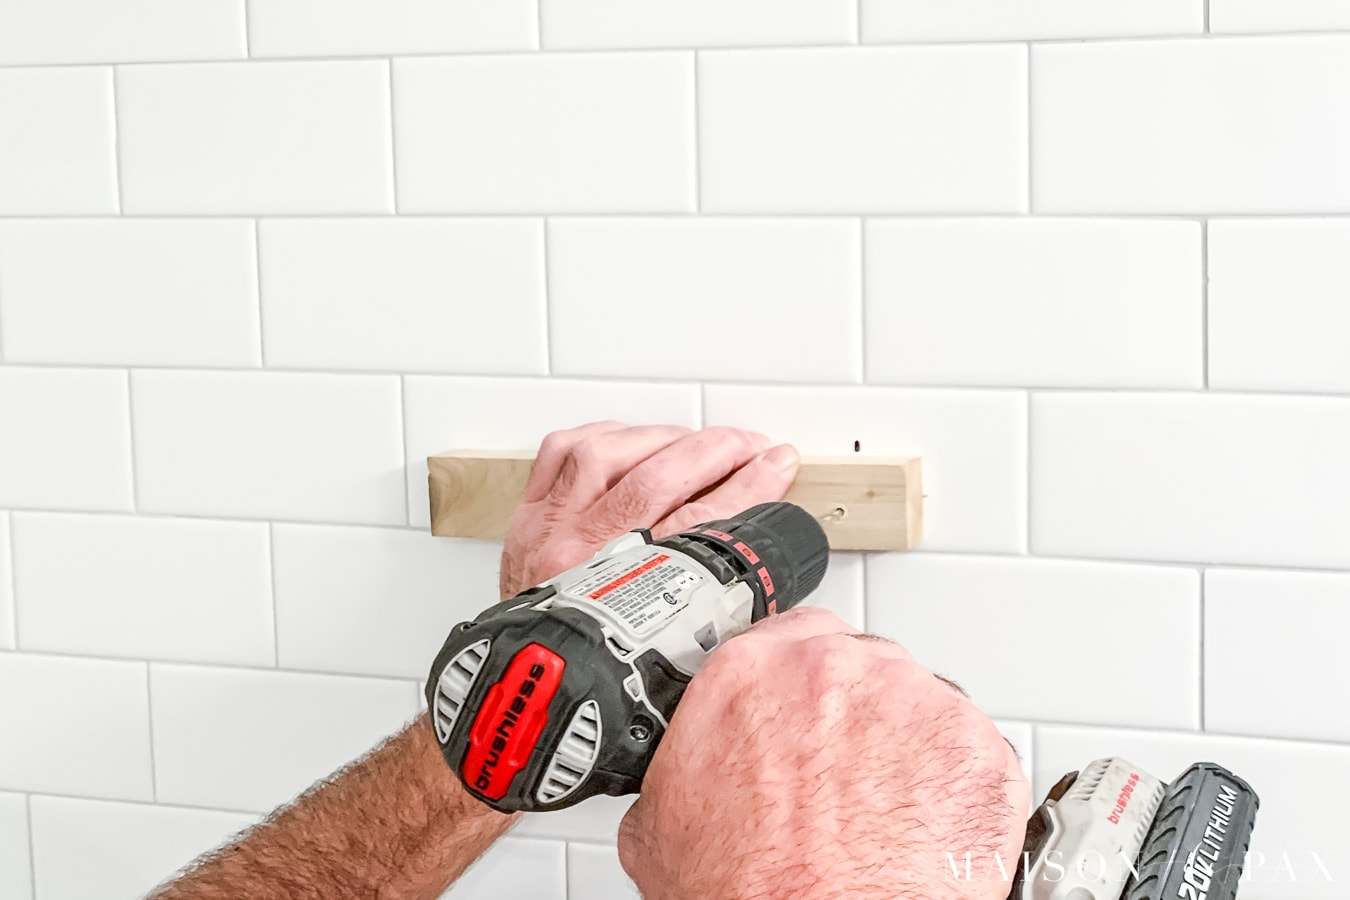 drilling into tile with scrap wood to guide the drill | Maison de Pax